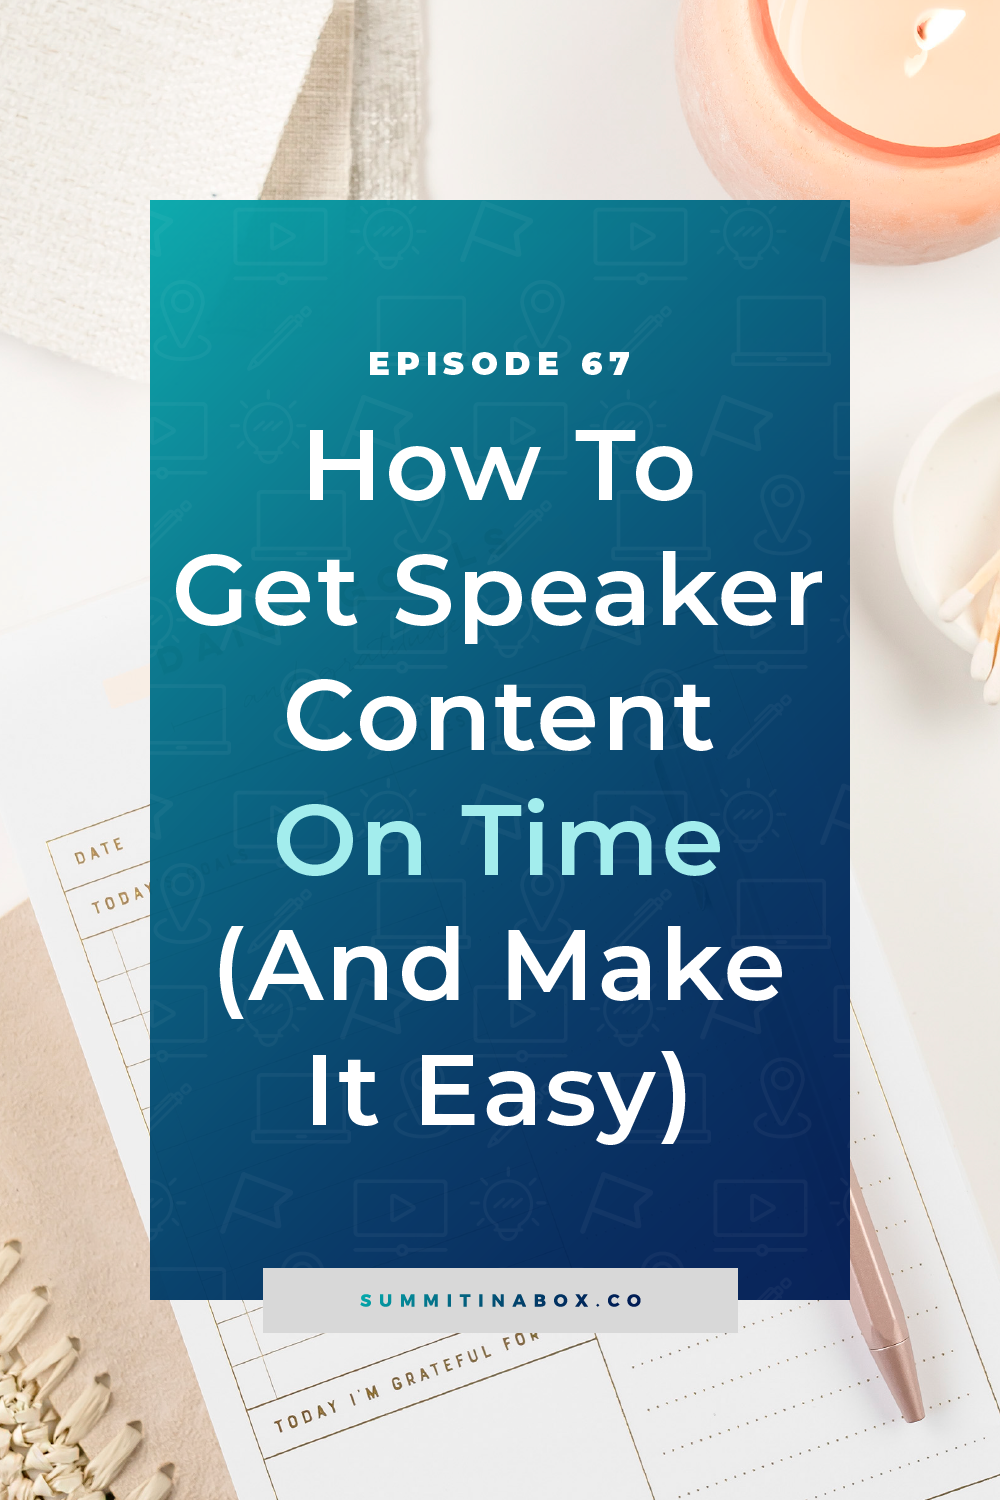 Feel like dealing with your virtual summit speakers is like herding cats? It can be! Here's how to get your speaker content on time and make it easy!